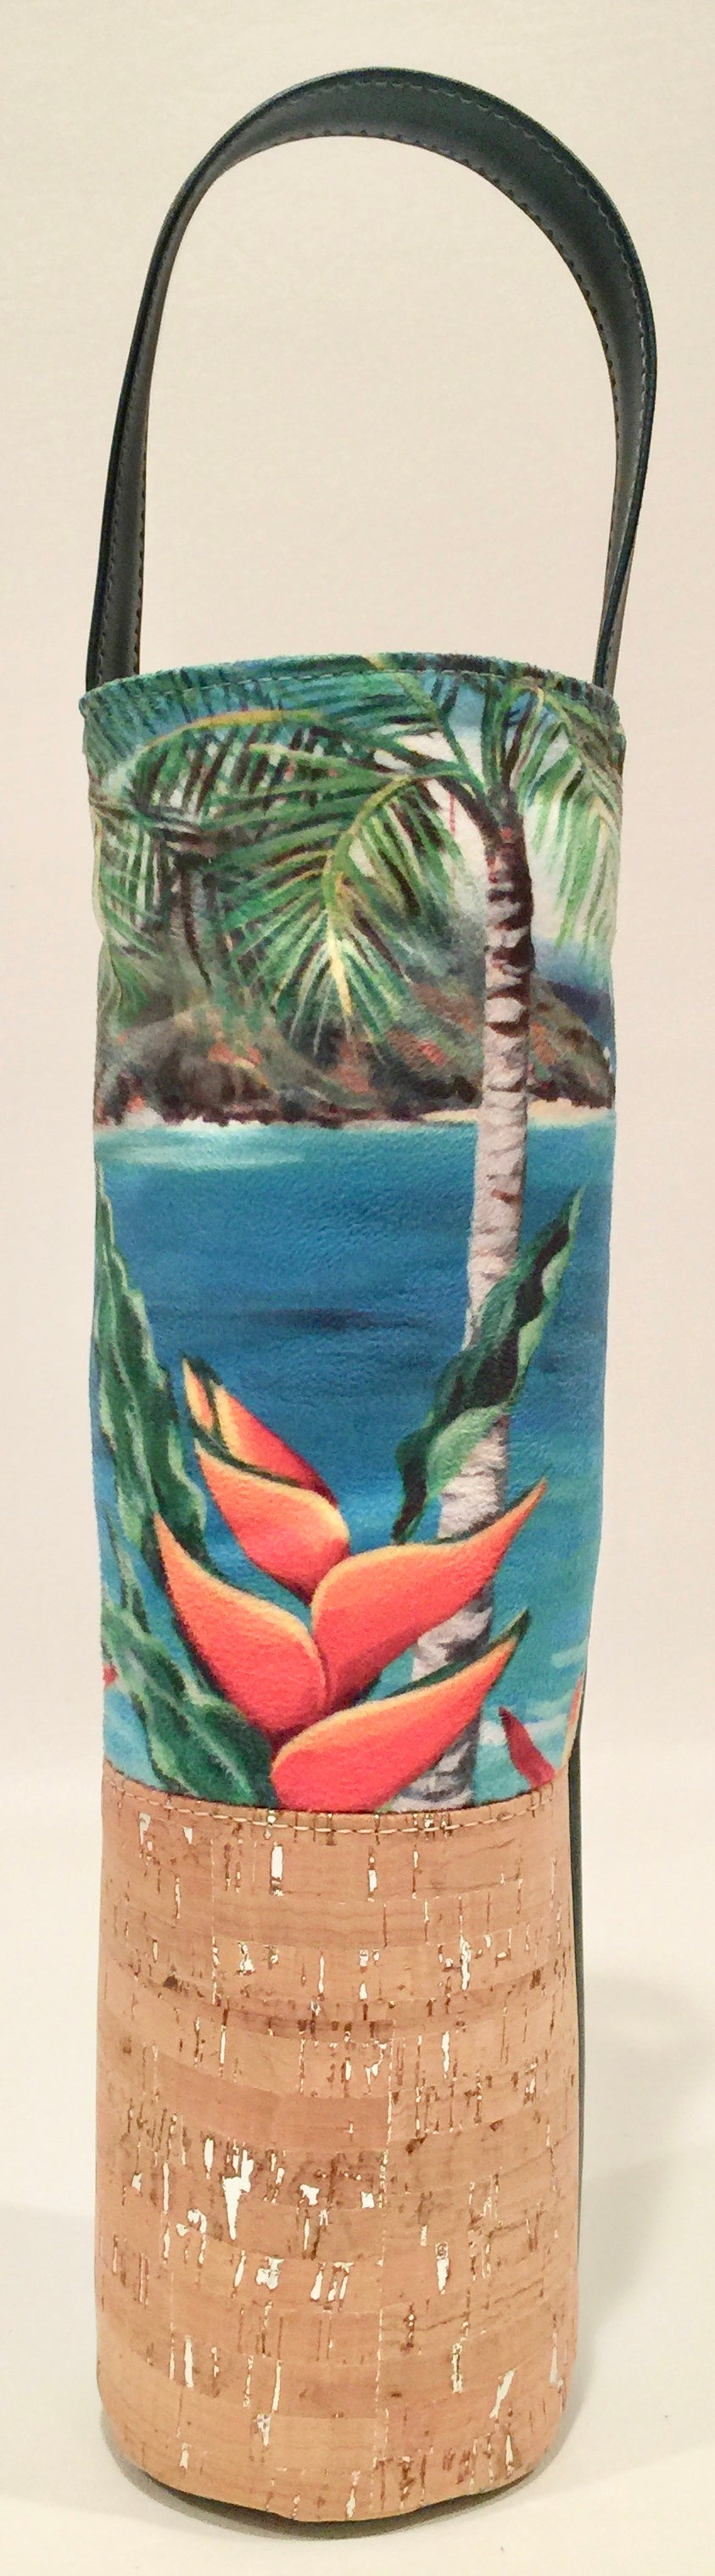 Heliconia Wine Bag - Bliss Hawaii